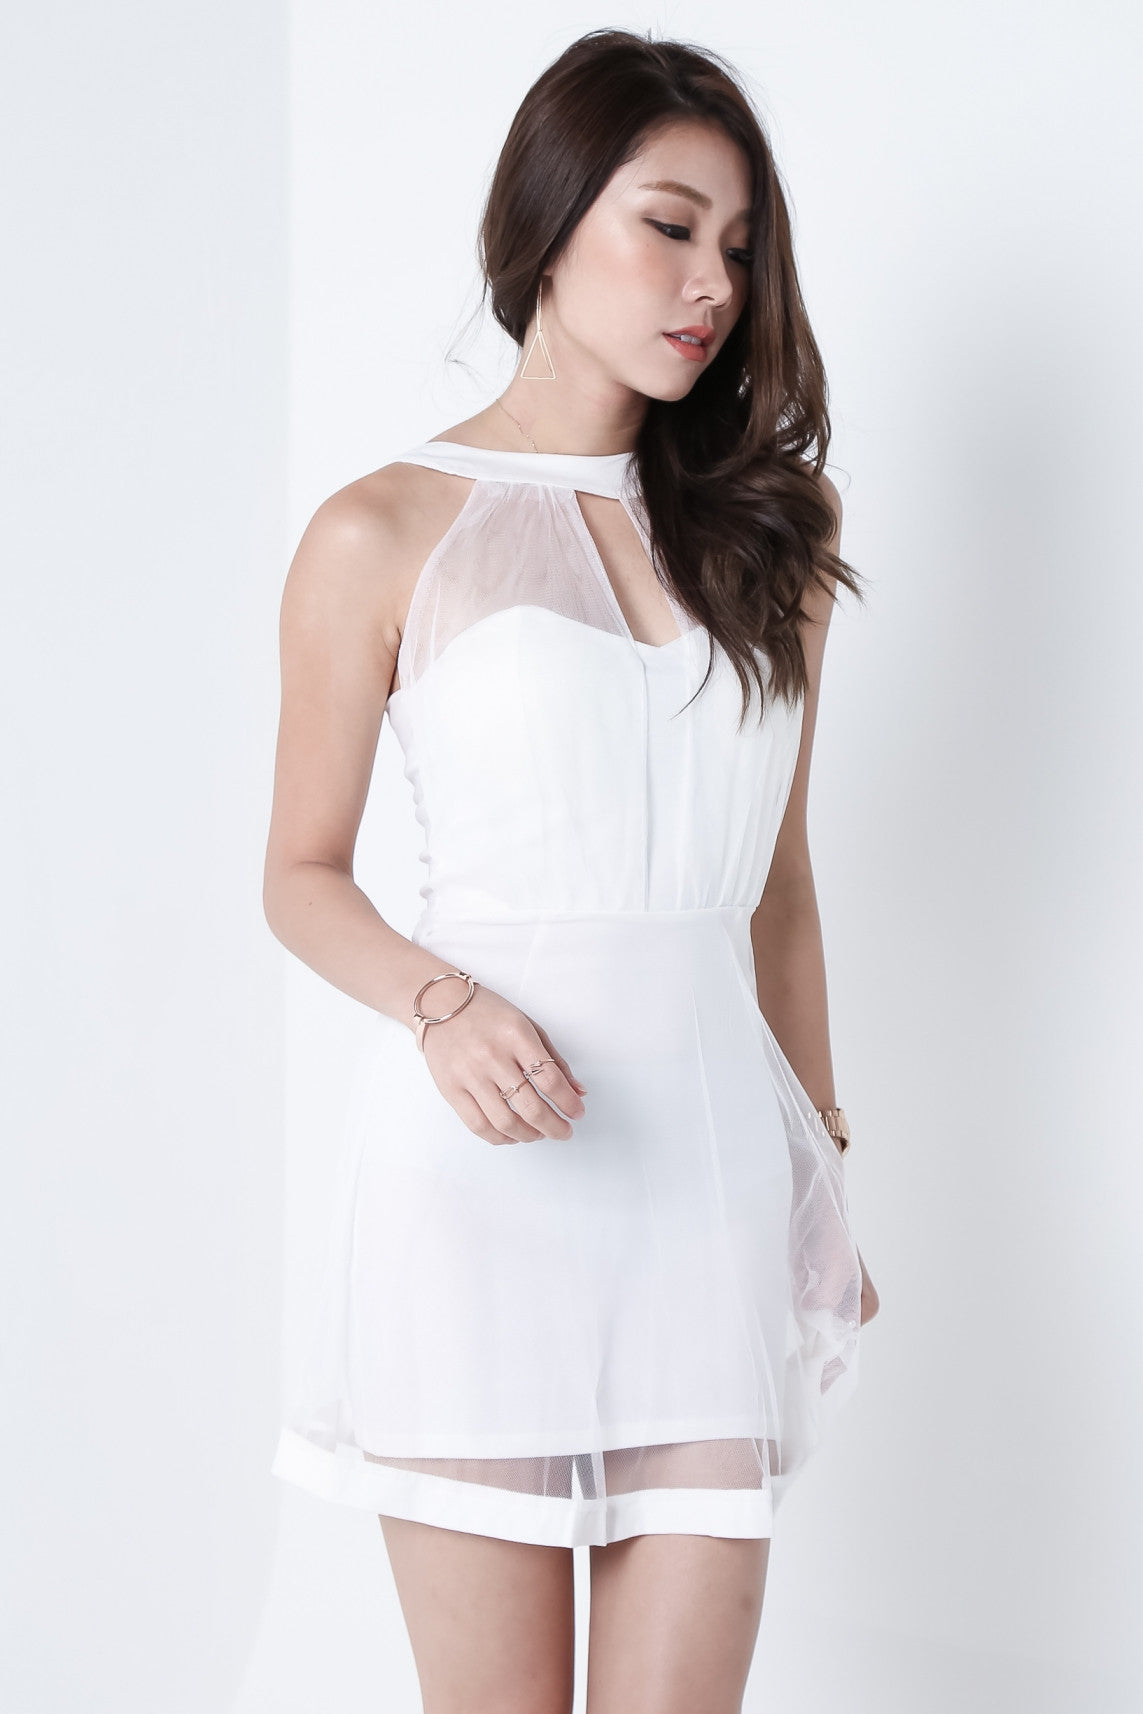 (RESTOCKED) BELLTRIX MESH DRESS IN WHITE - TOPAZETTE